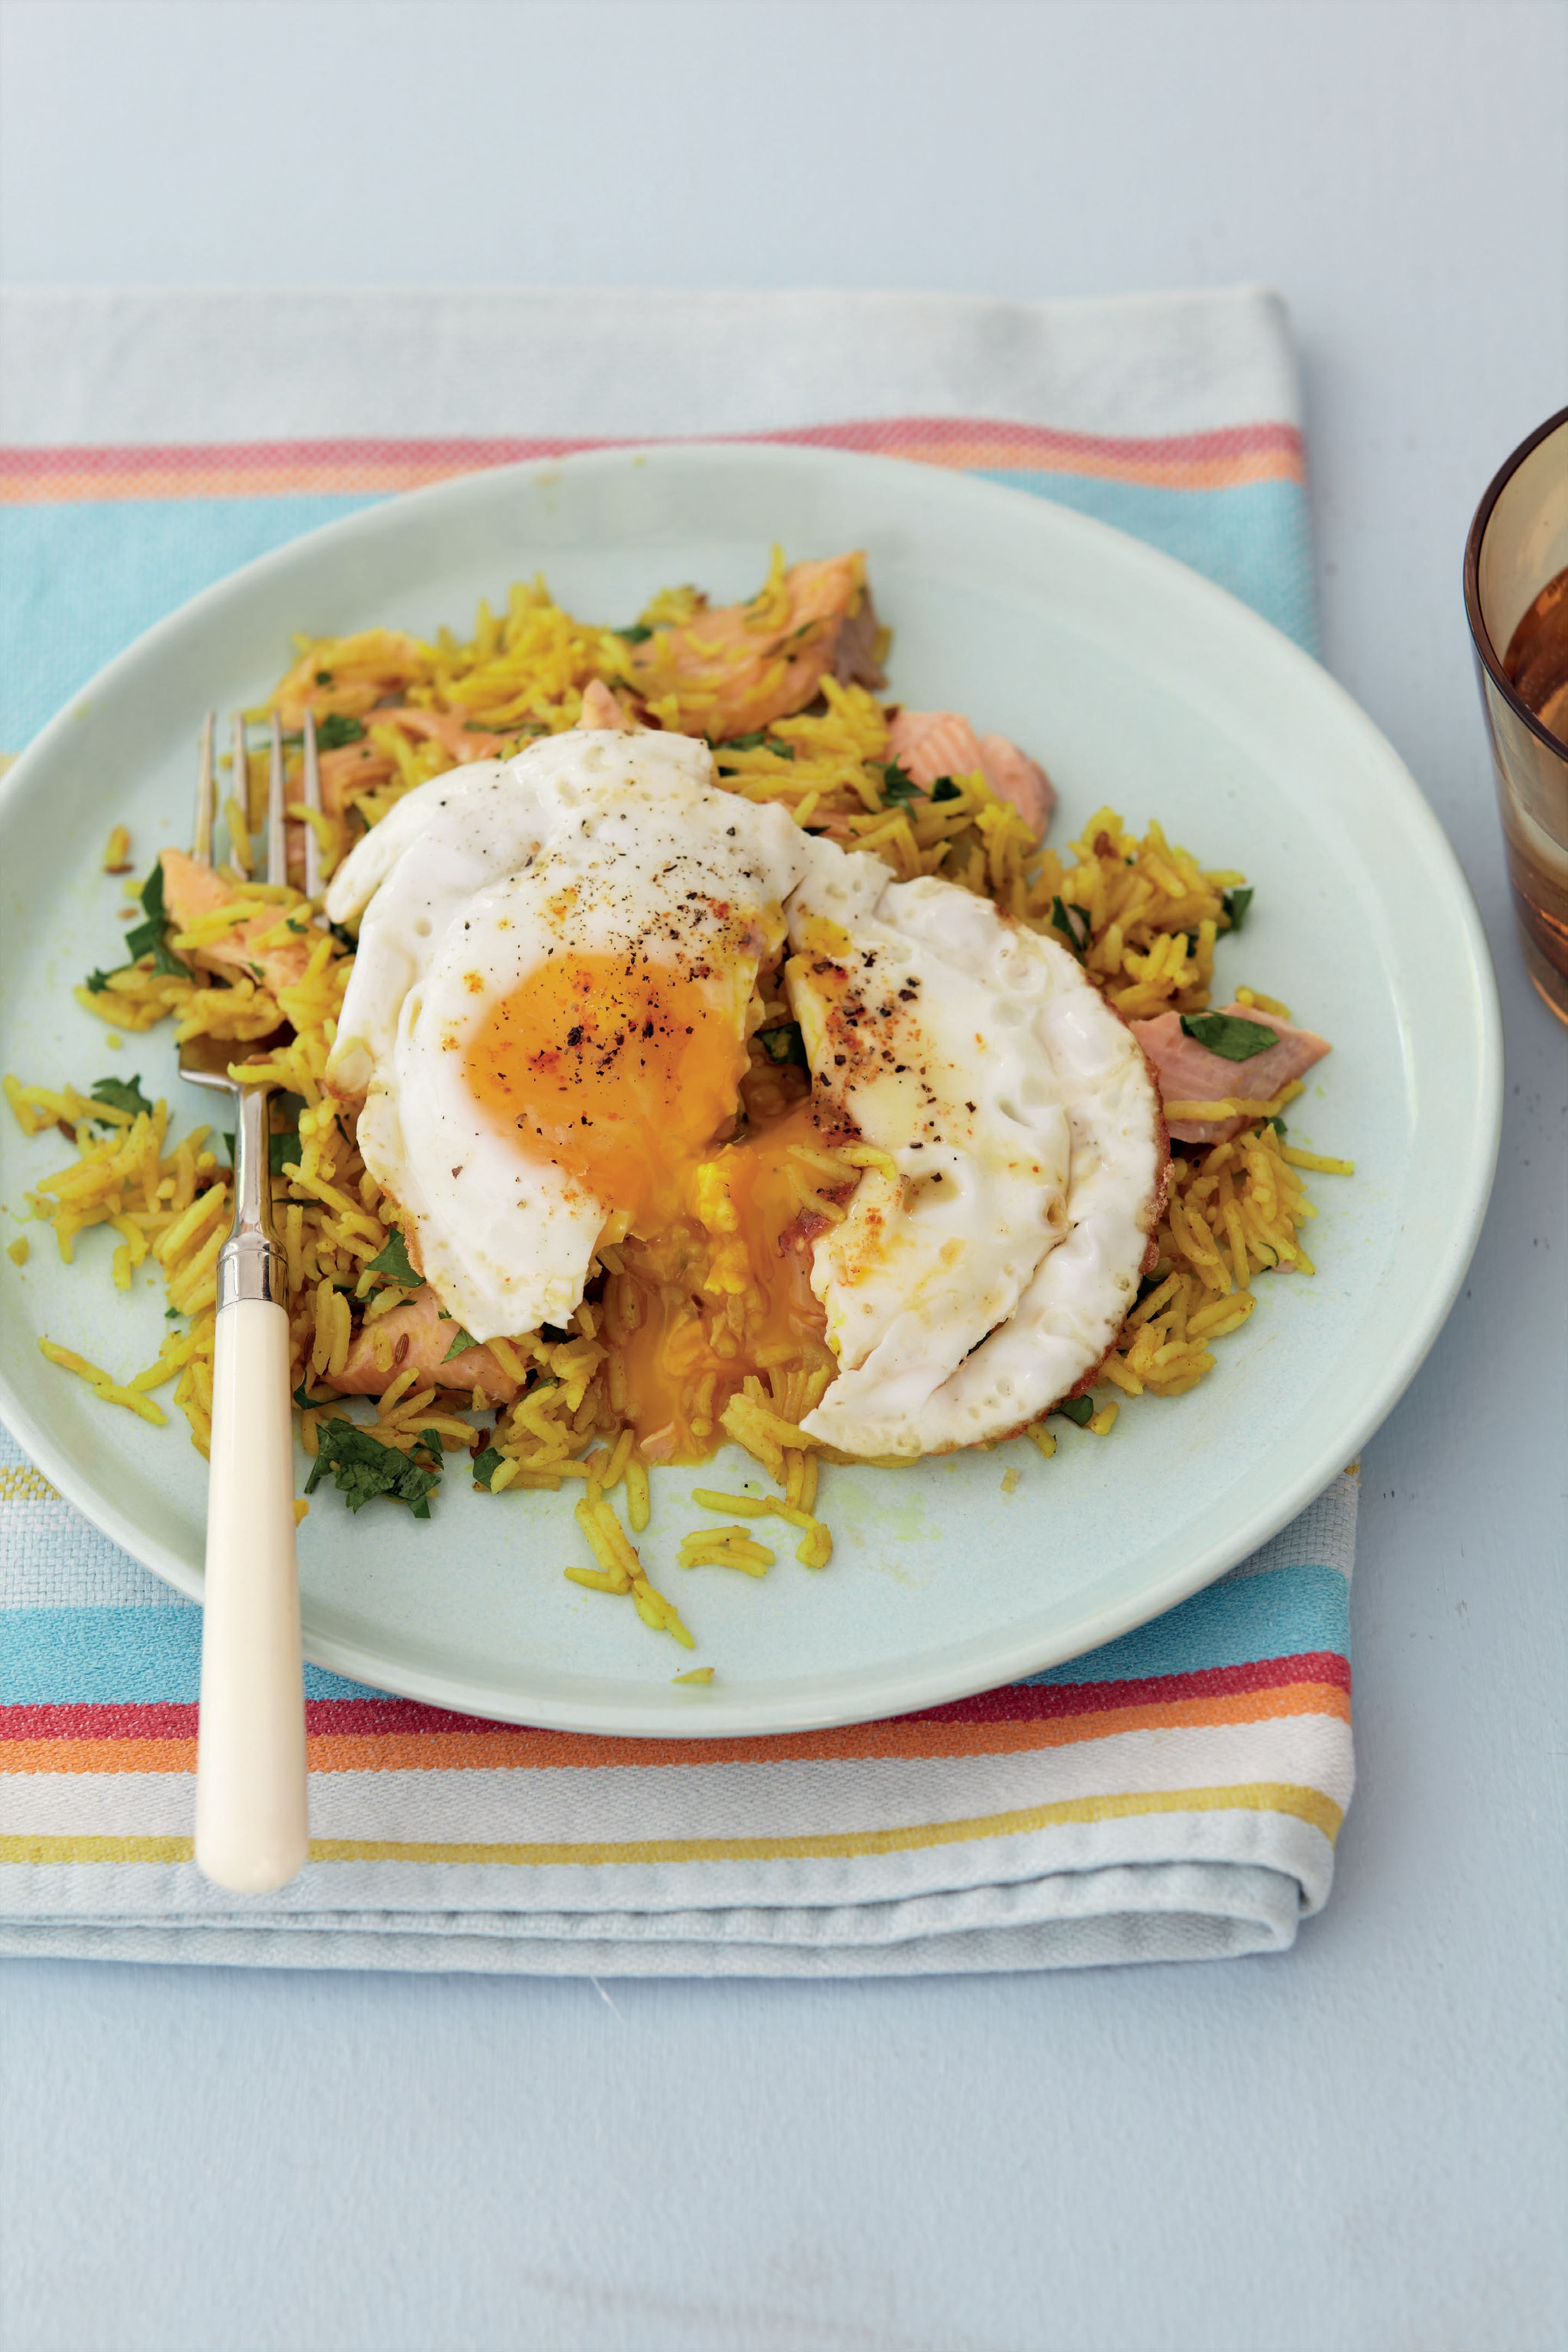 Smoked trout with kedgeree pilaf